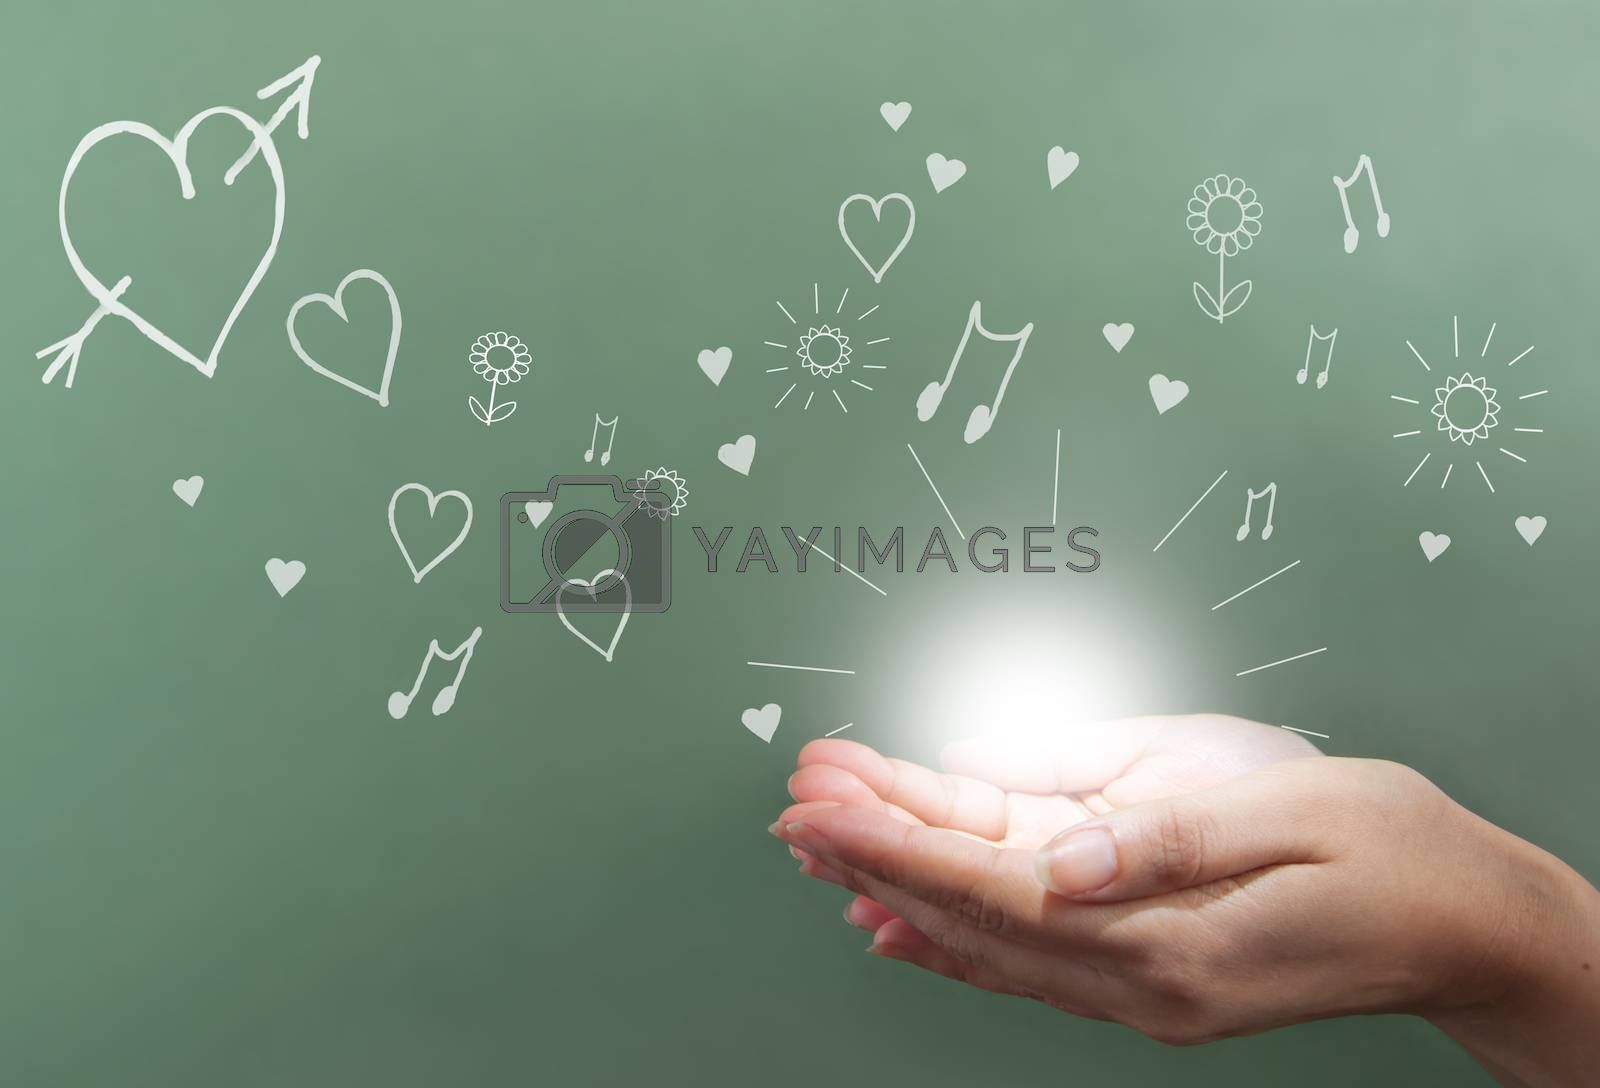 Hand holding energy ball with love symbols drawn on a chalkboard in the background